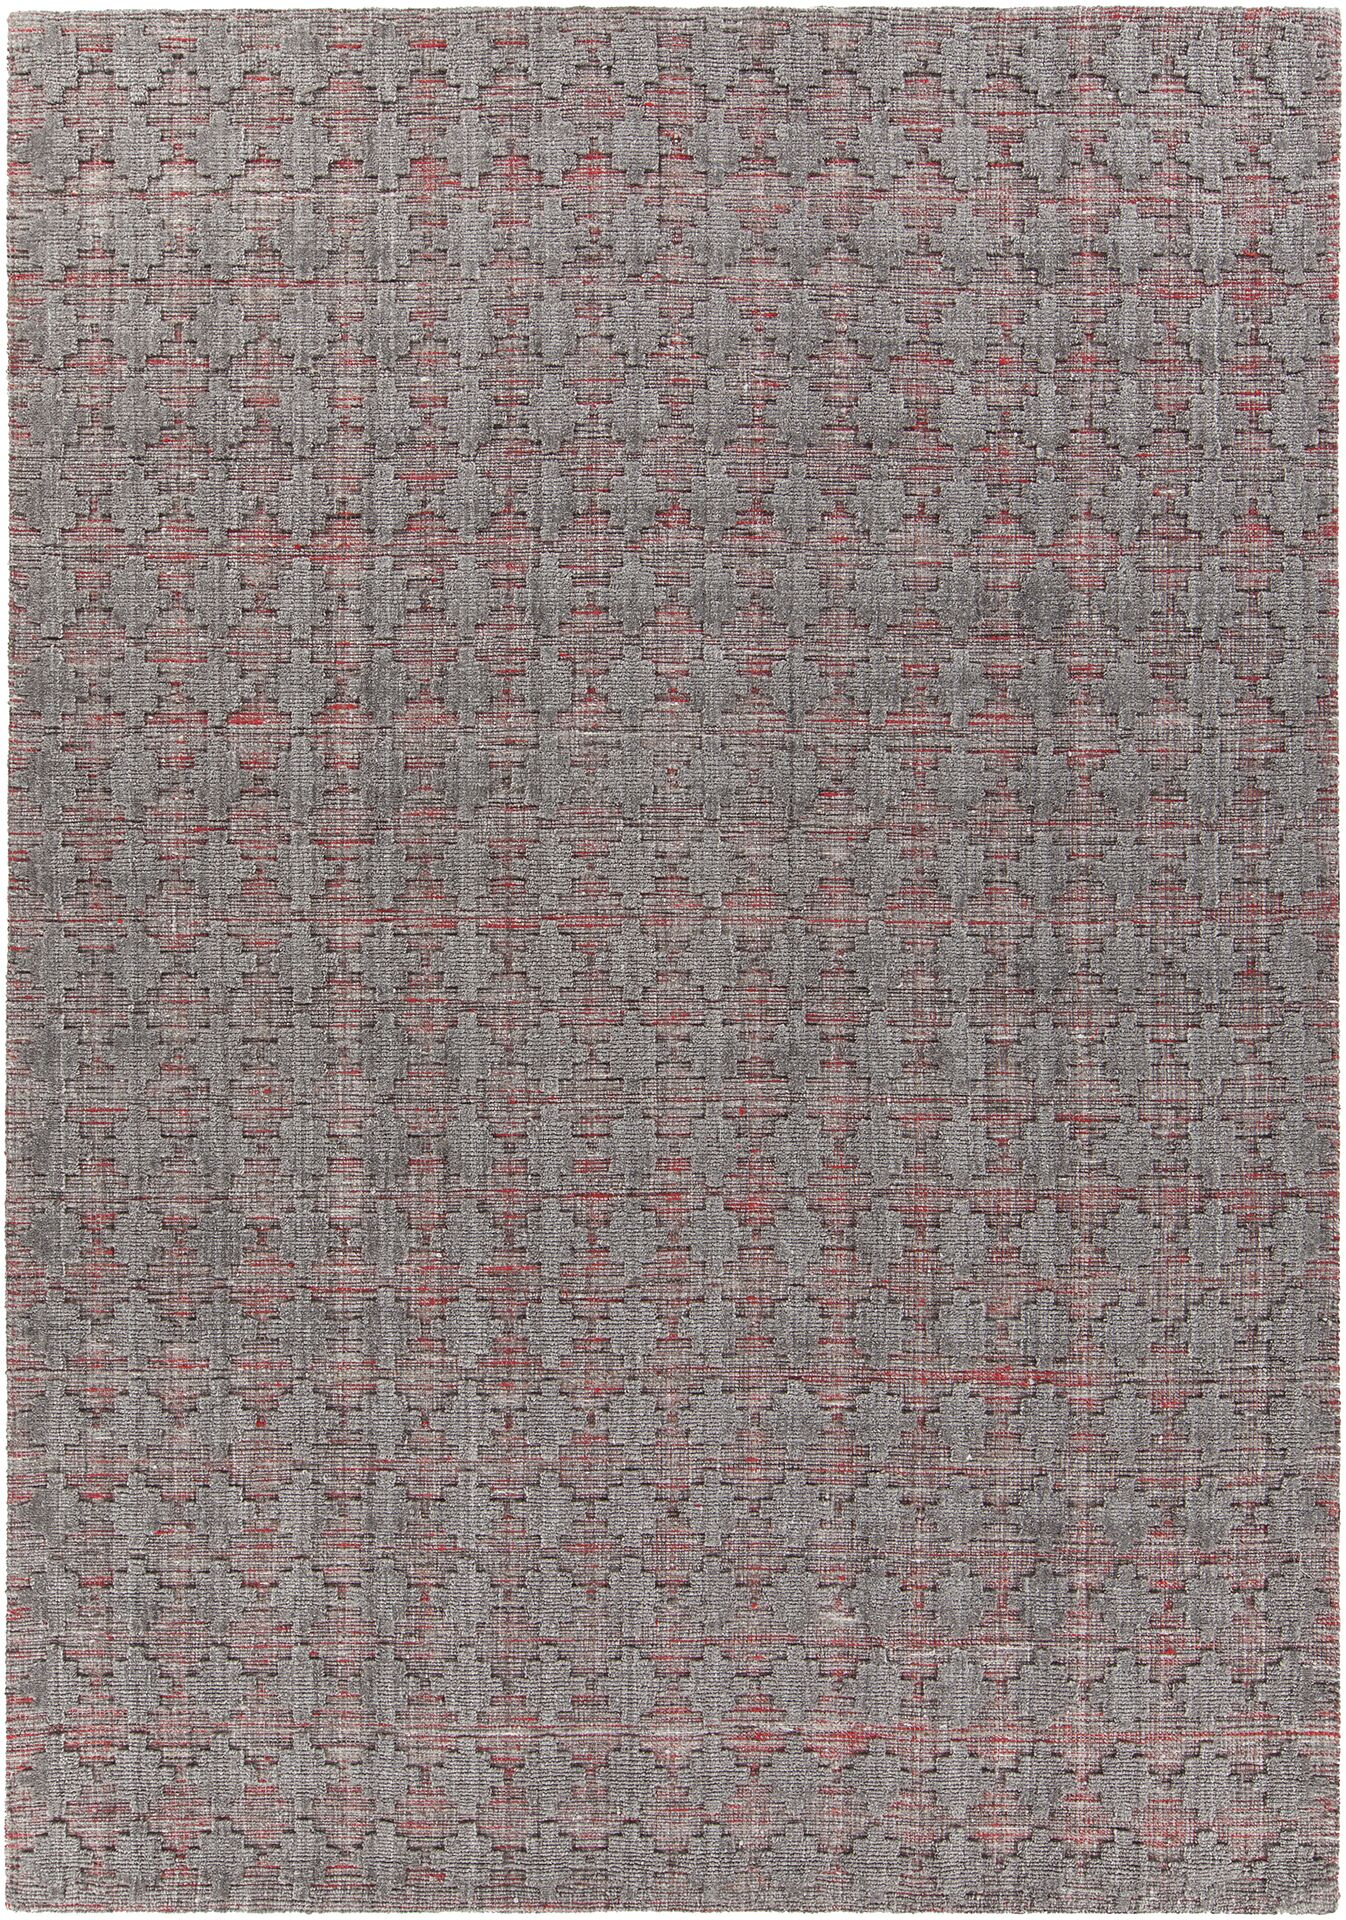 Tenleytown Hand-Woven Red/Gray Area Rug Rug Size: 7'9